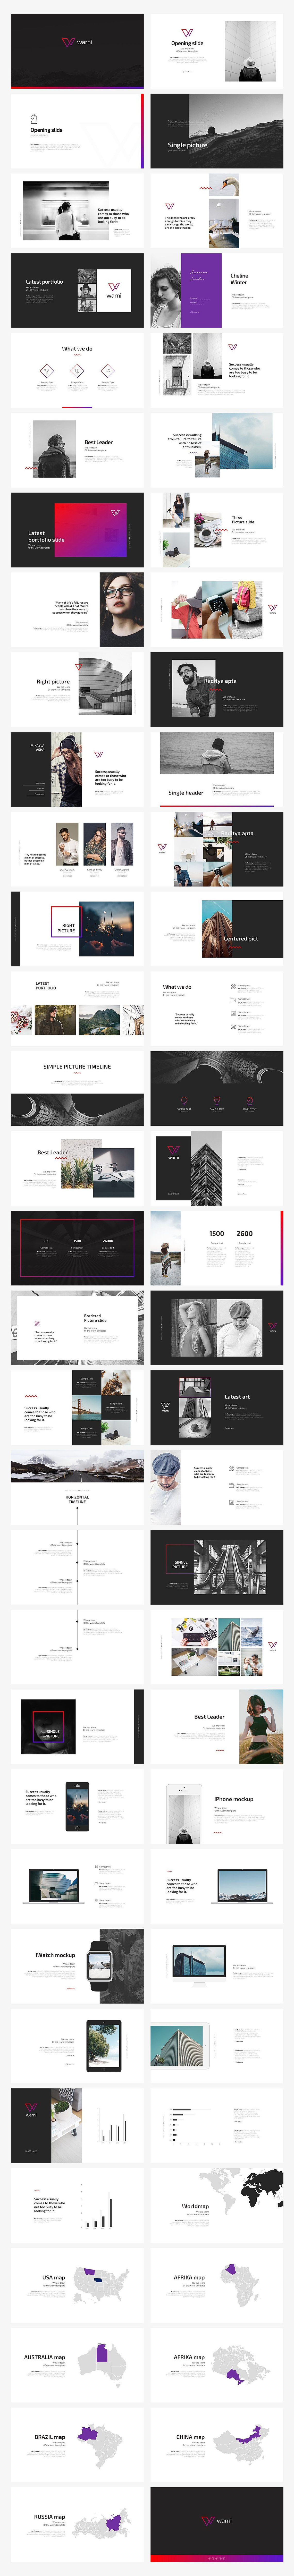 Warni powerpoint template template powerpoint presentation warni powerpoint template toneelgroepblik Gallery